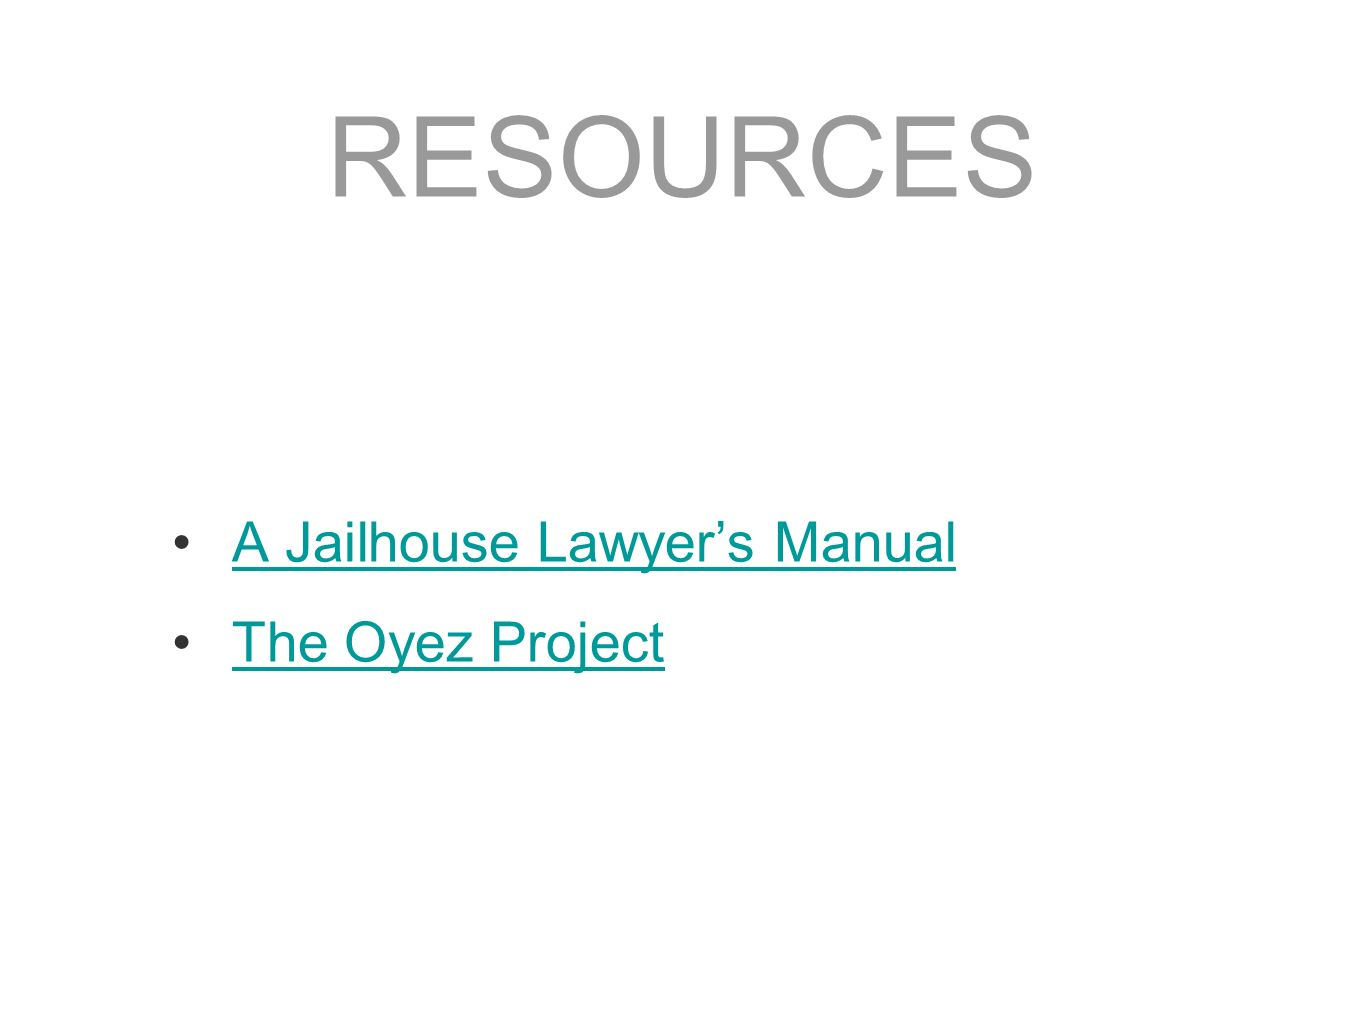 RESOURCES A Jailhouse Lawyers Manual The Oyez Project